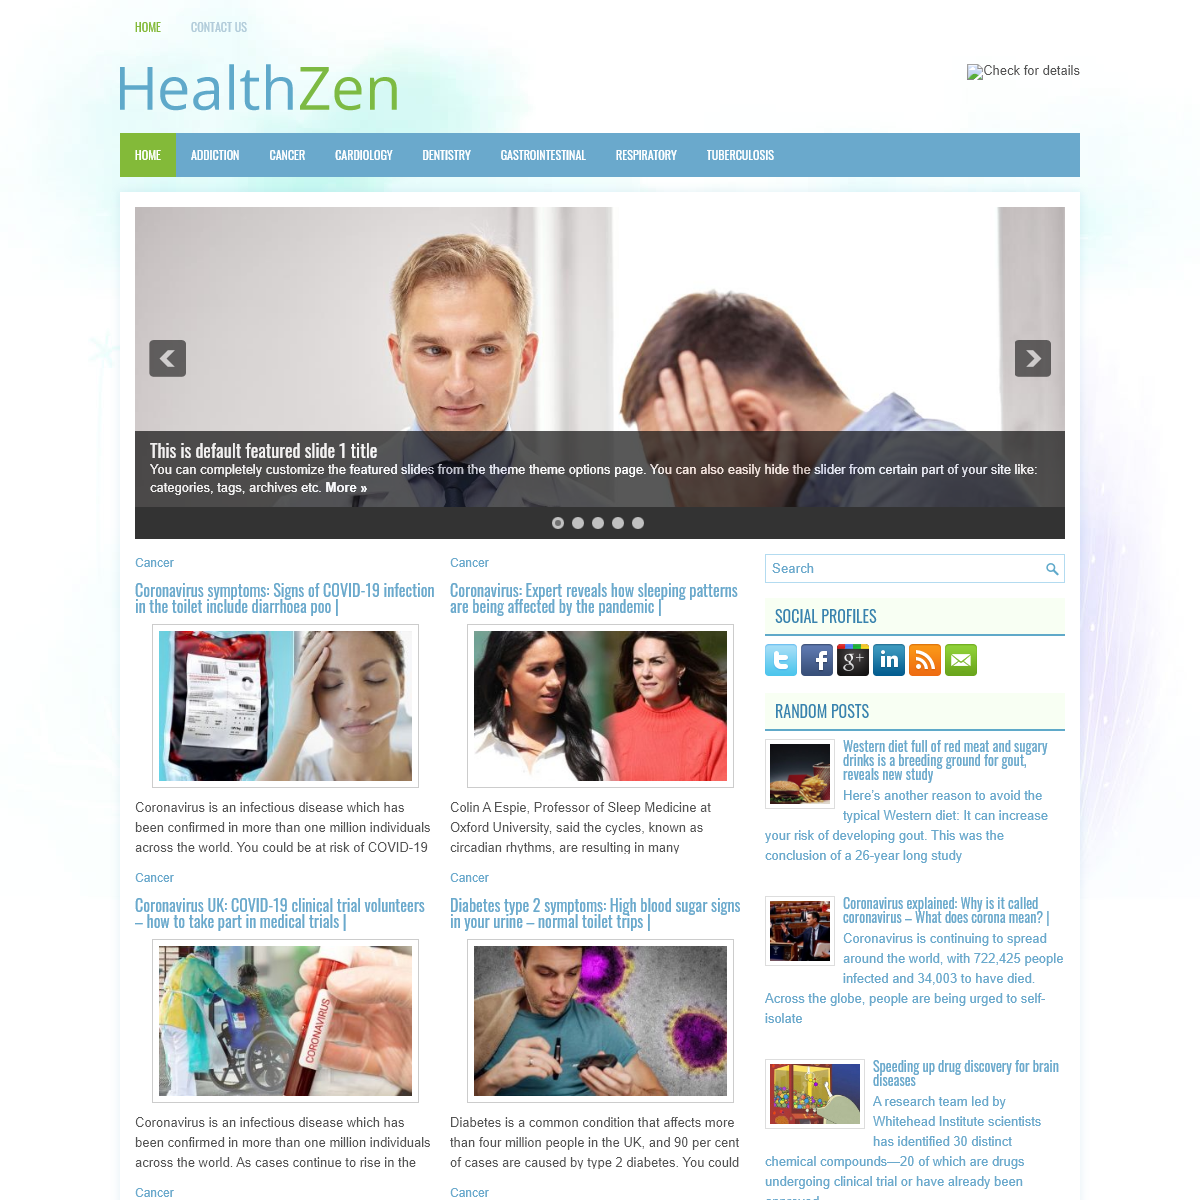 The Health information - Your online health expert